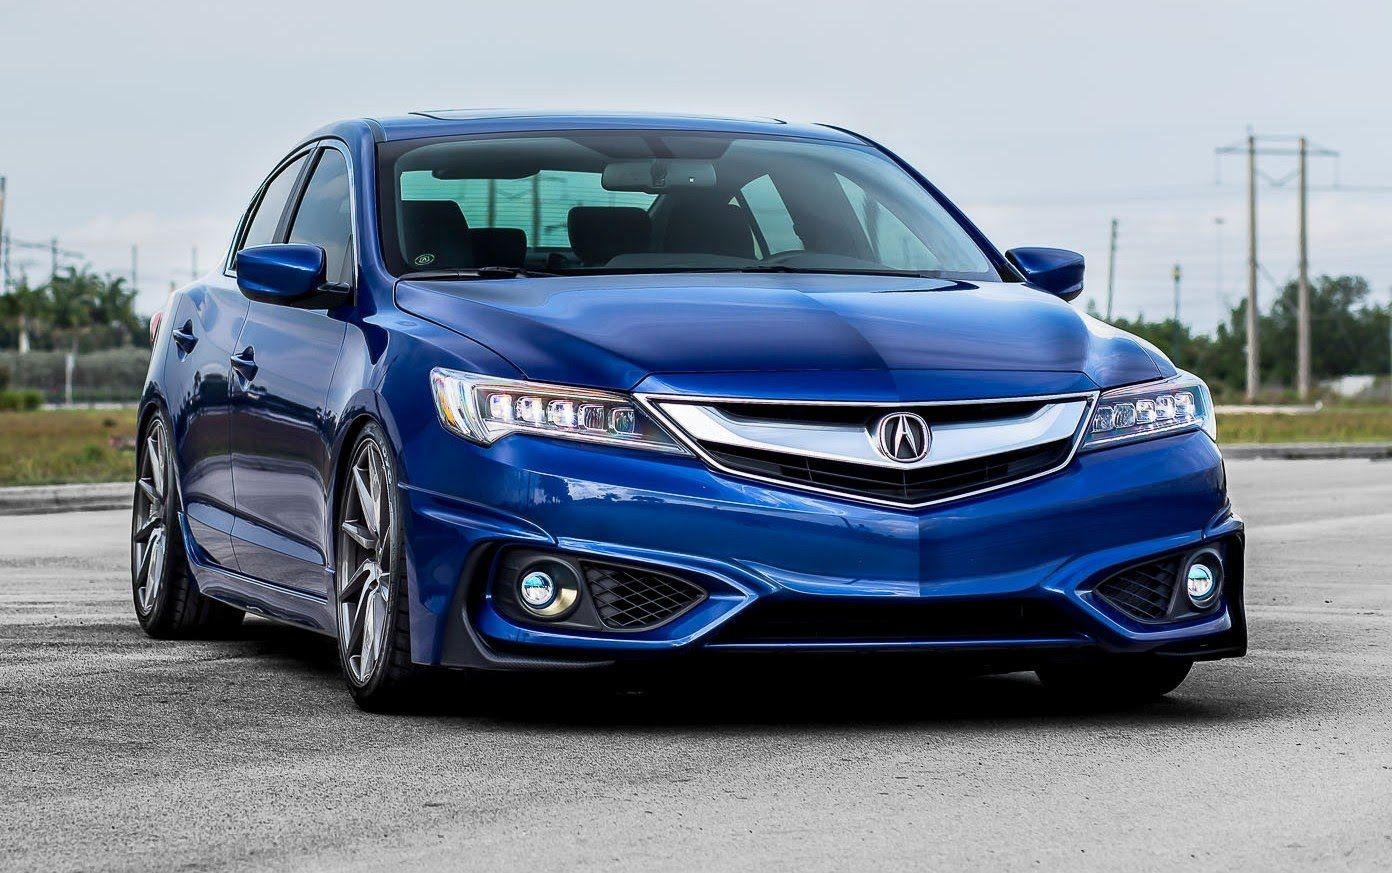 Pin By Aaron Briggs On Acura Baby Acura Ilx Acura Car Lease